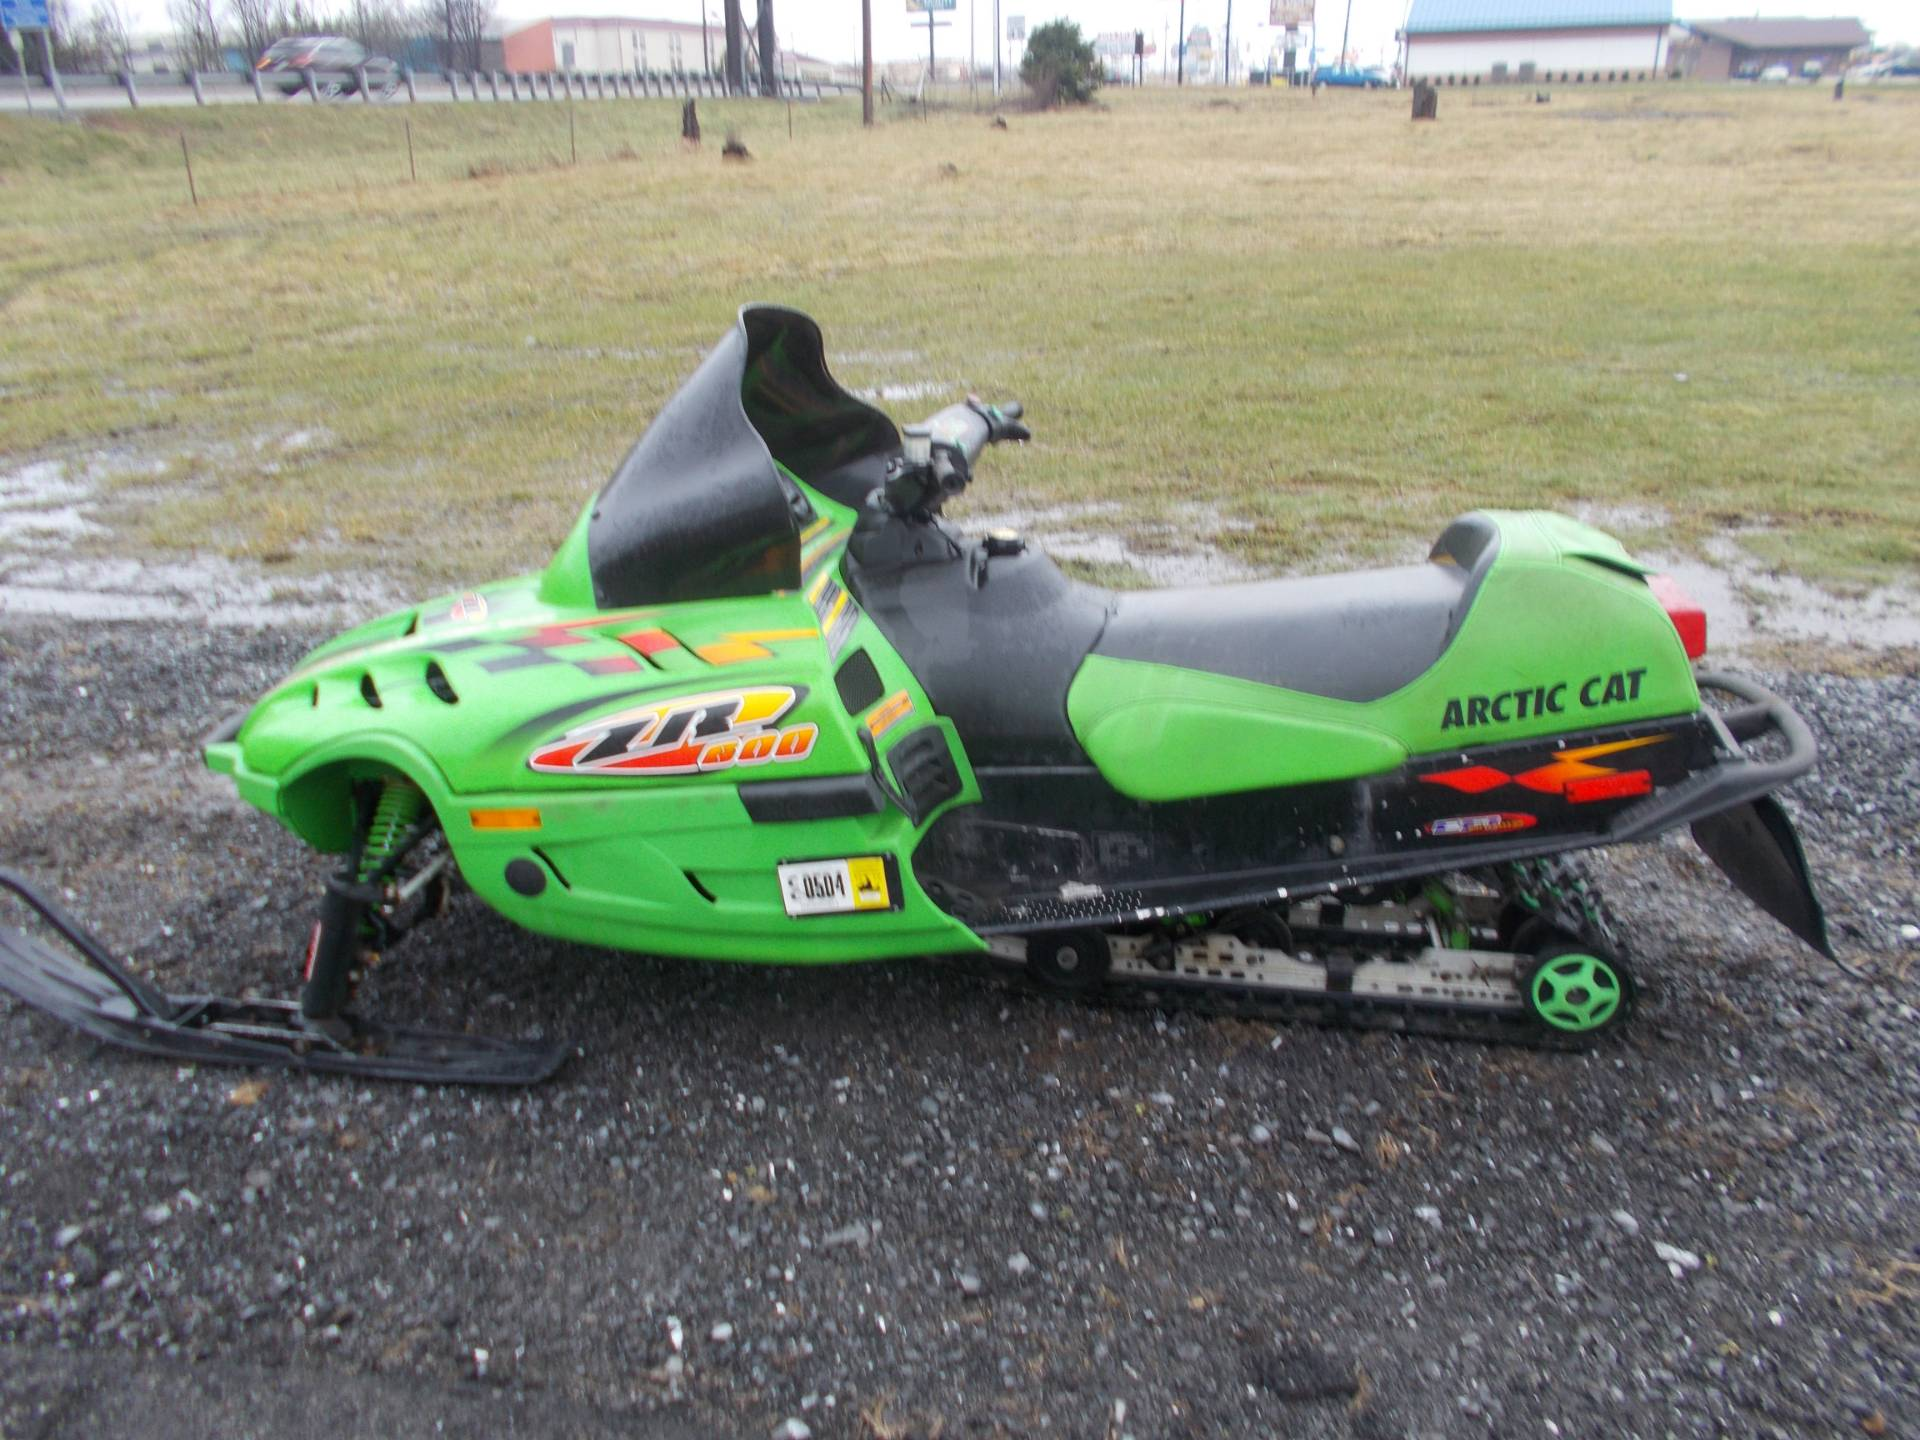 1999 Arctic Cat zr 600 in Ebensburg, Pennsylvania